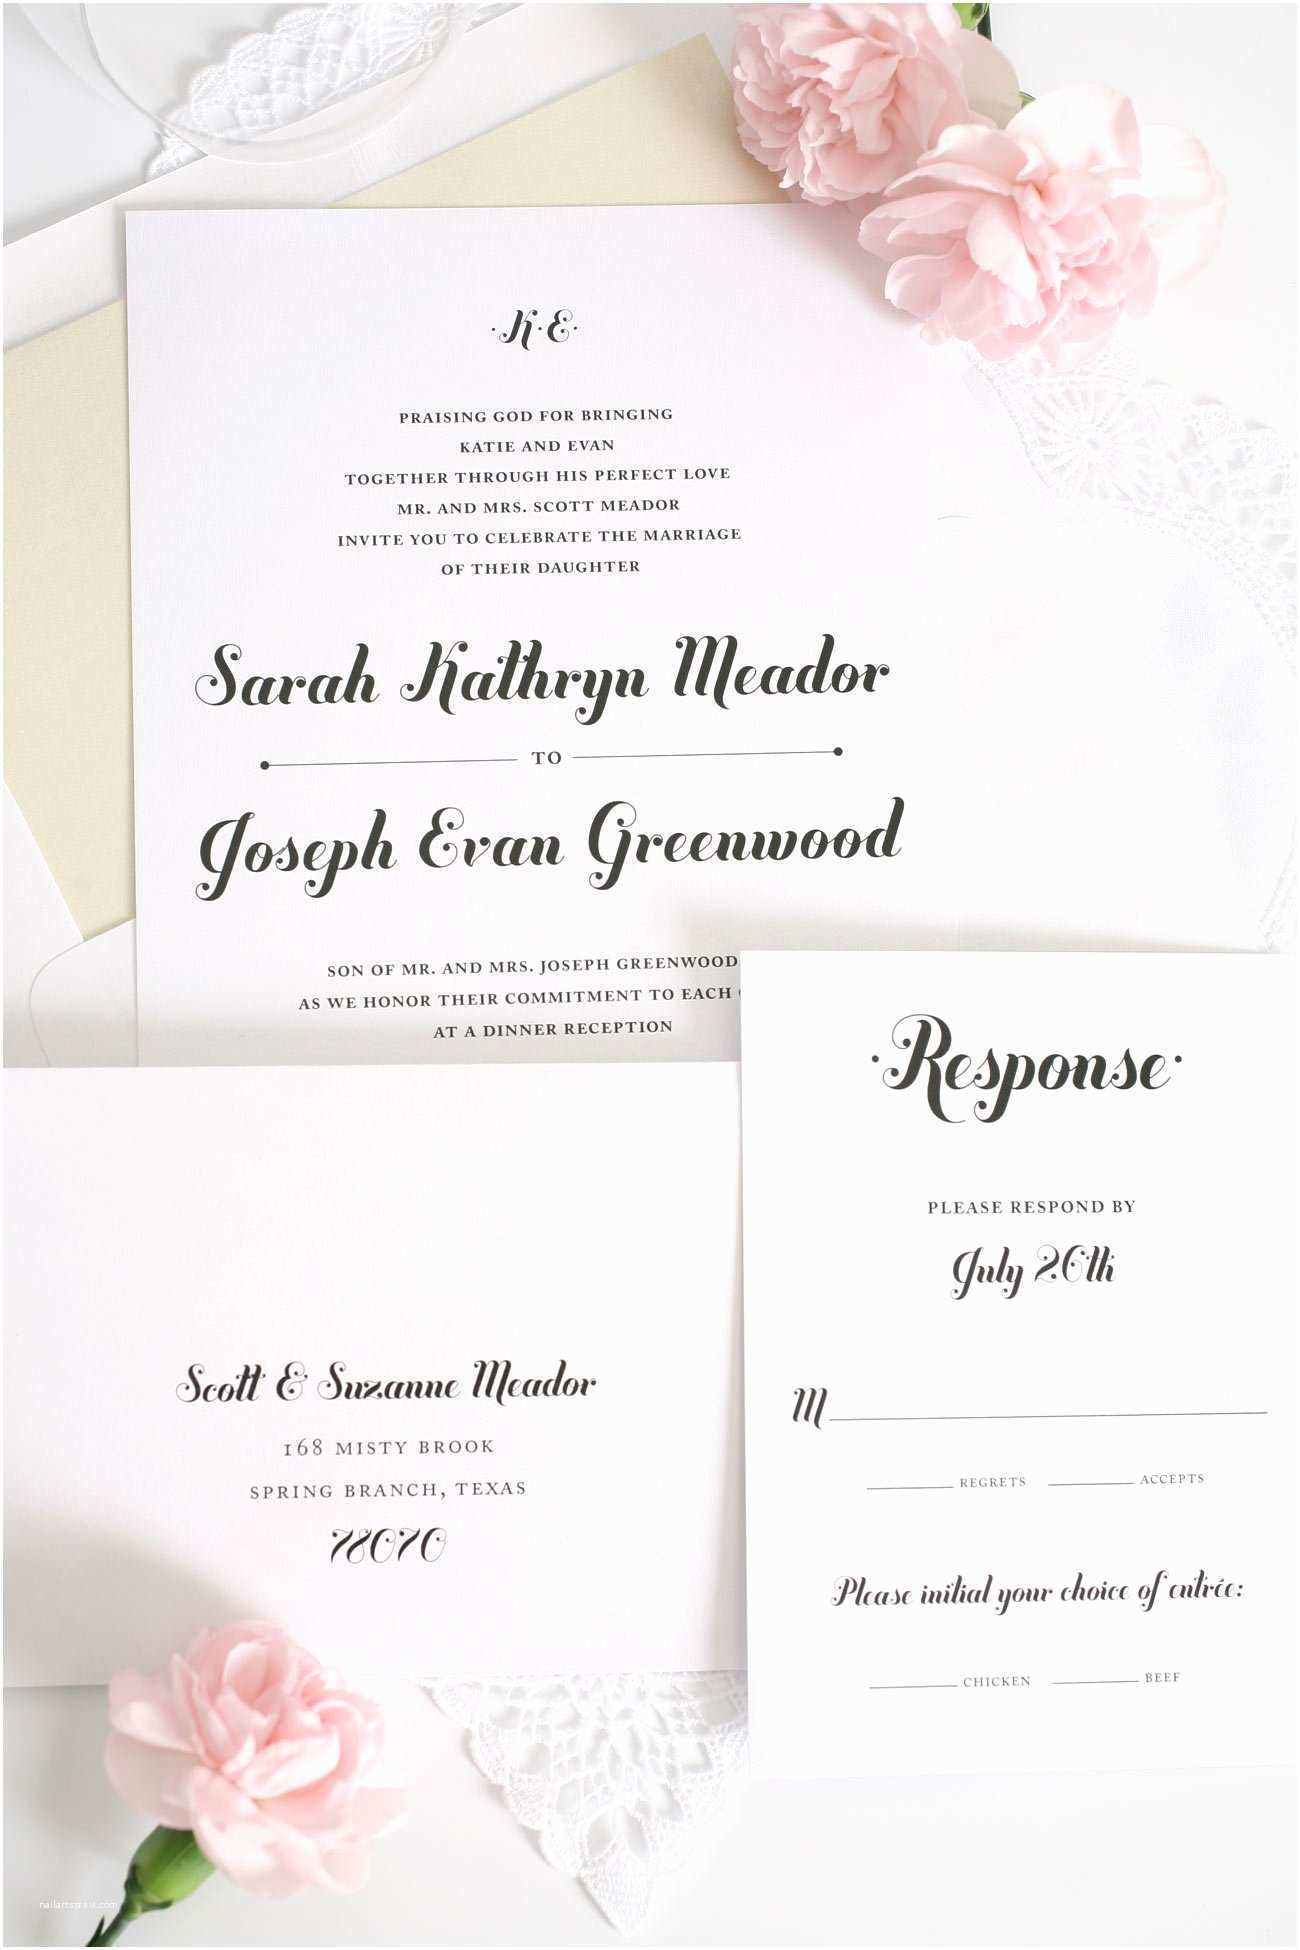 Cursive Wedding Invitations Whimsical Script Wedding Invitations – Wedding Invitations